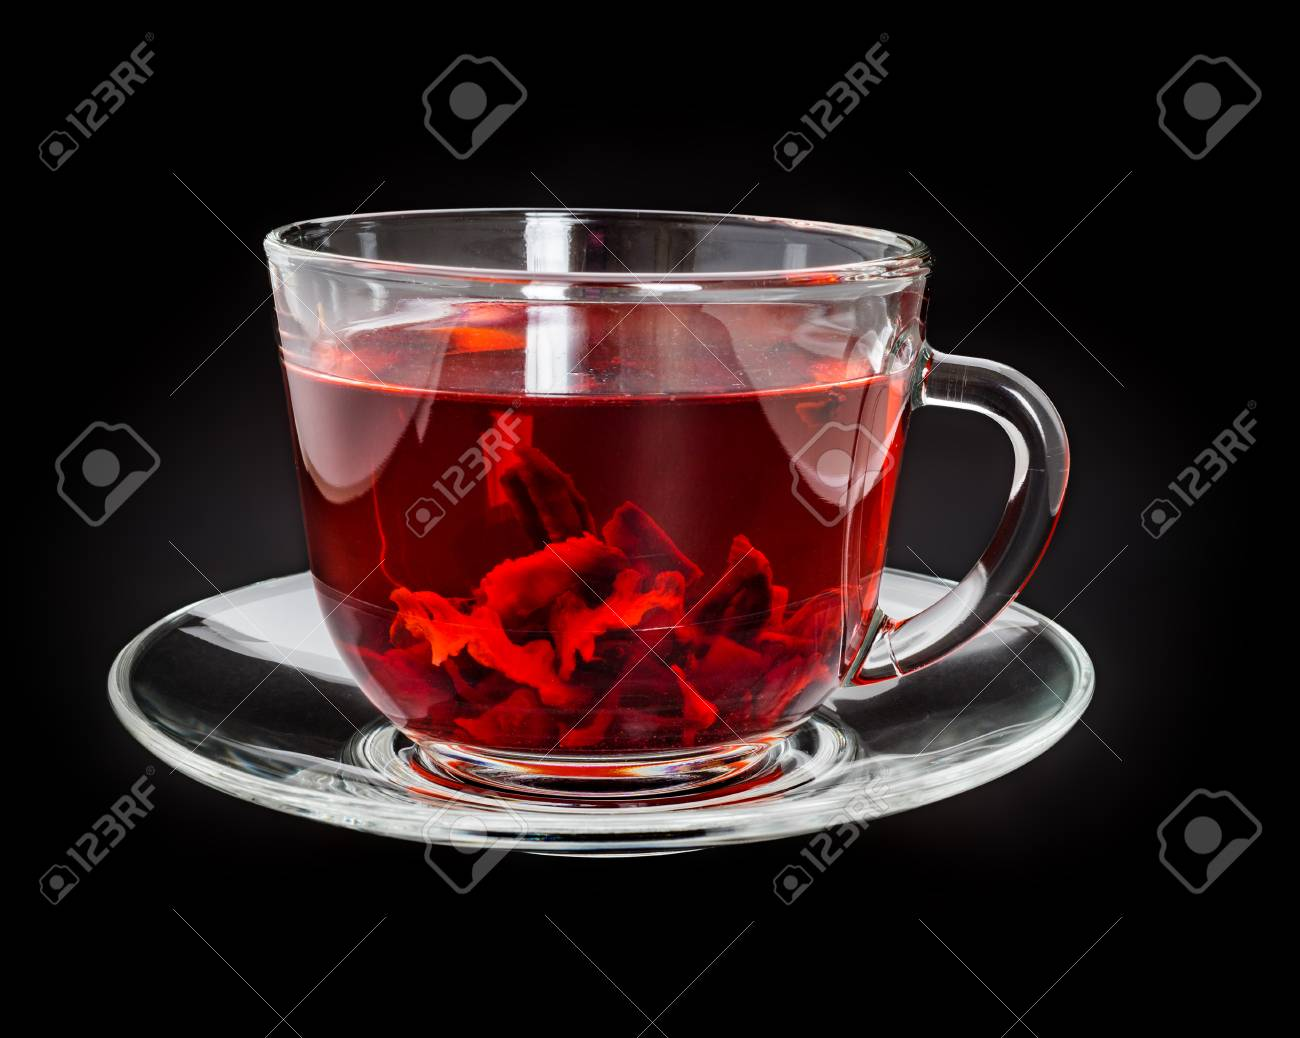 Red Hibiscus Tea In Transparent Cup On Black Backround Stock Photo